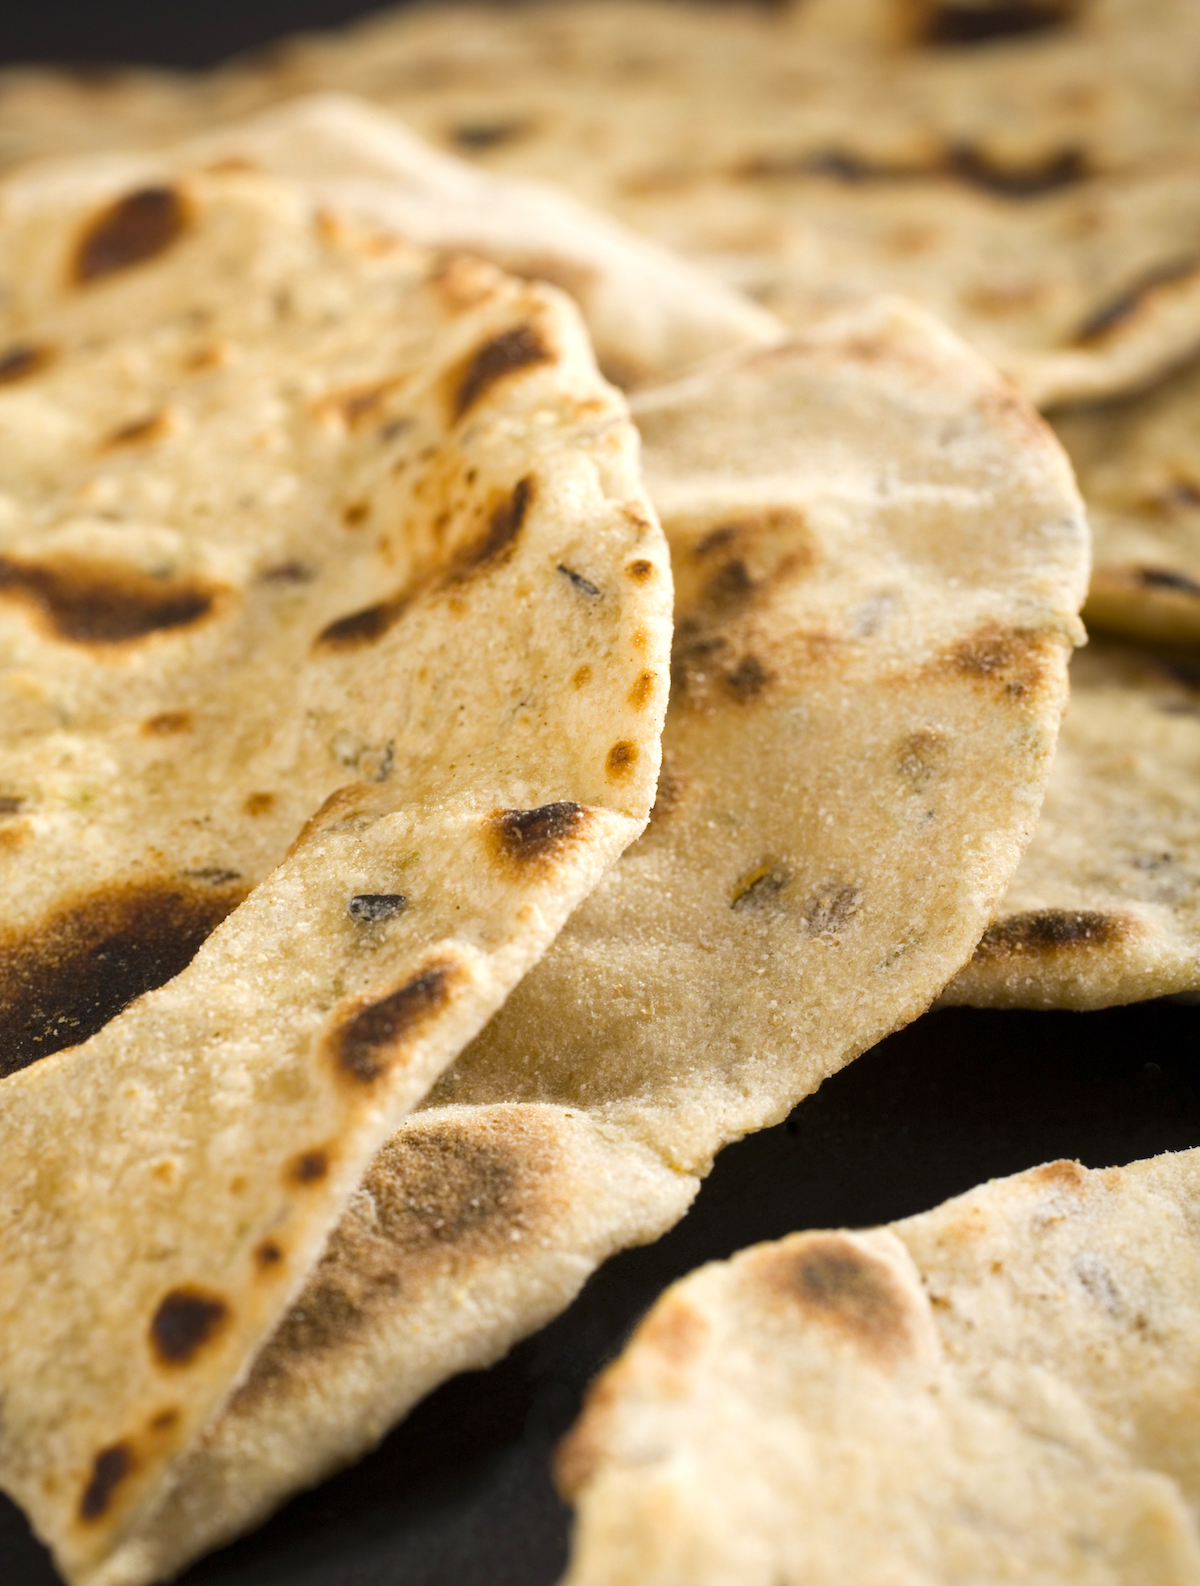 Chapatis ©travellight shutterstock